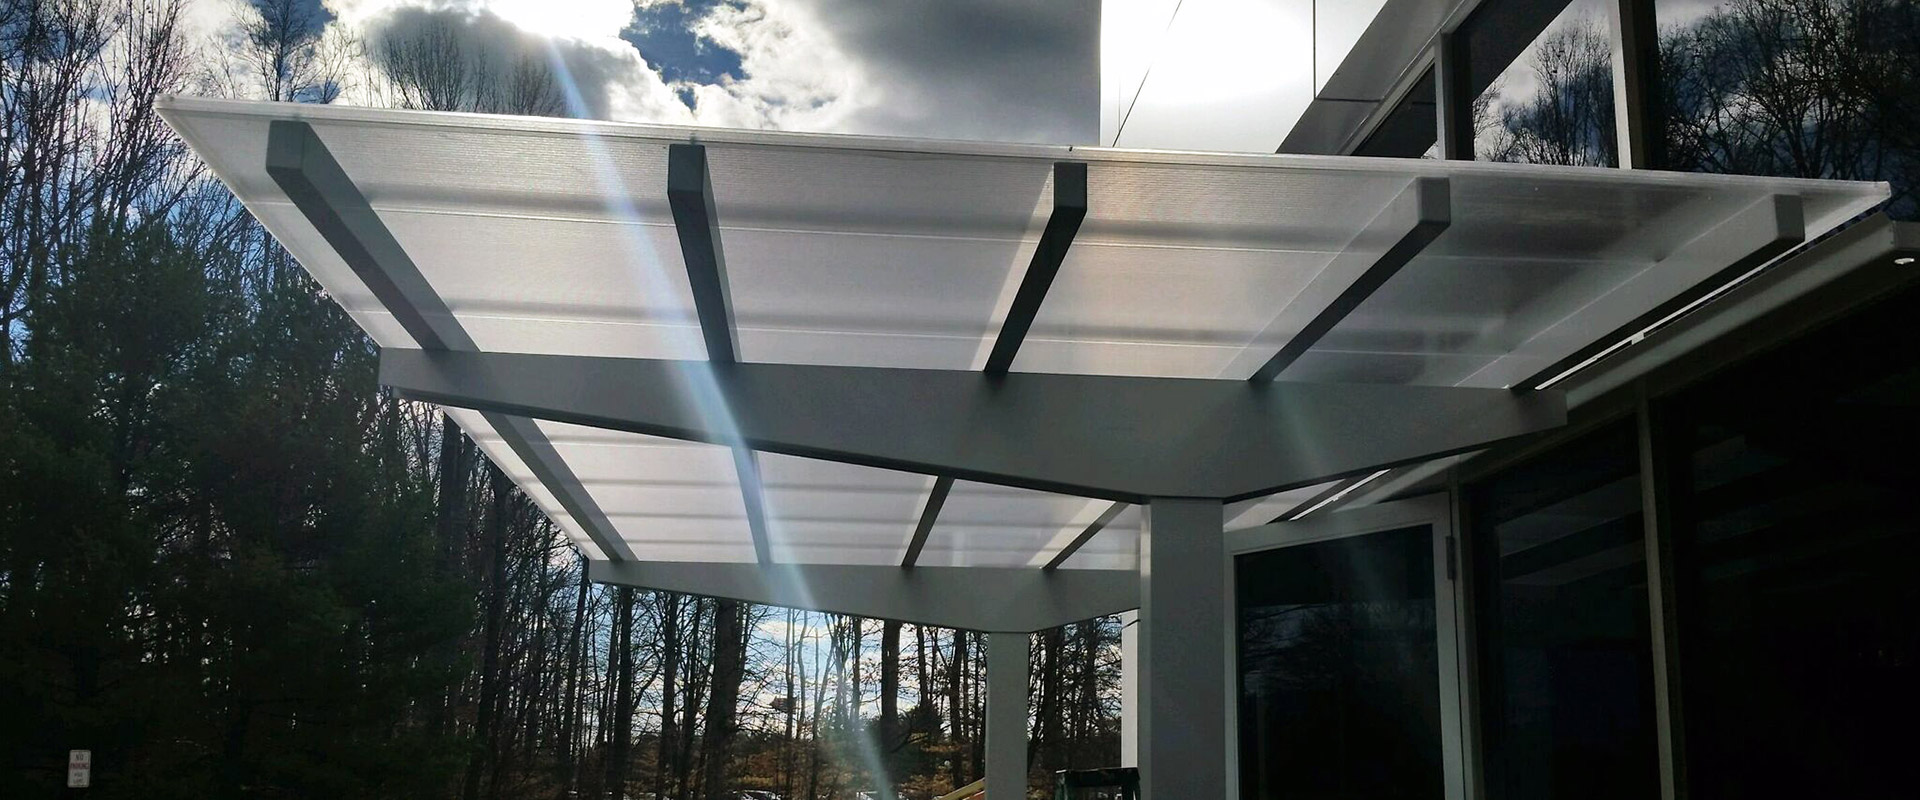 Louver Canopy, Metal Building Canopies and Modern Glass Canopy System